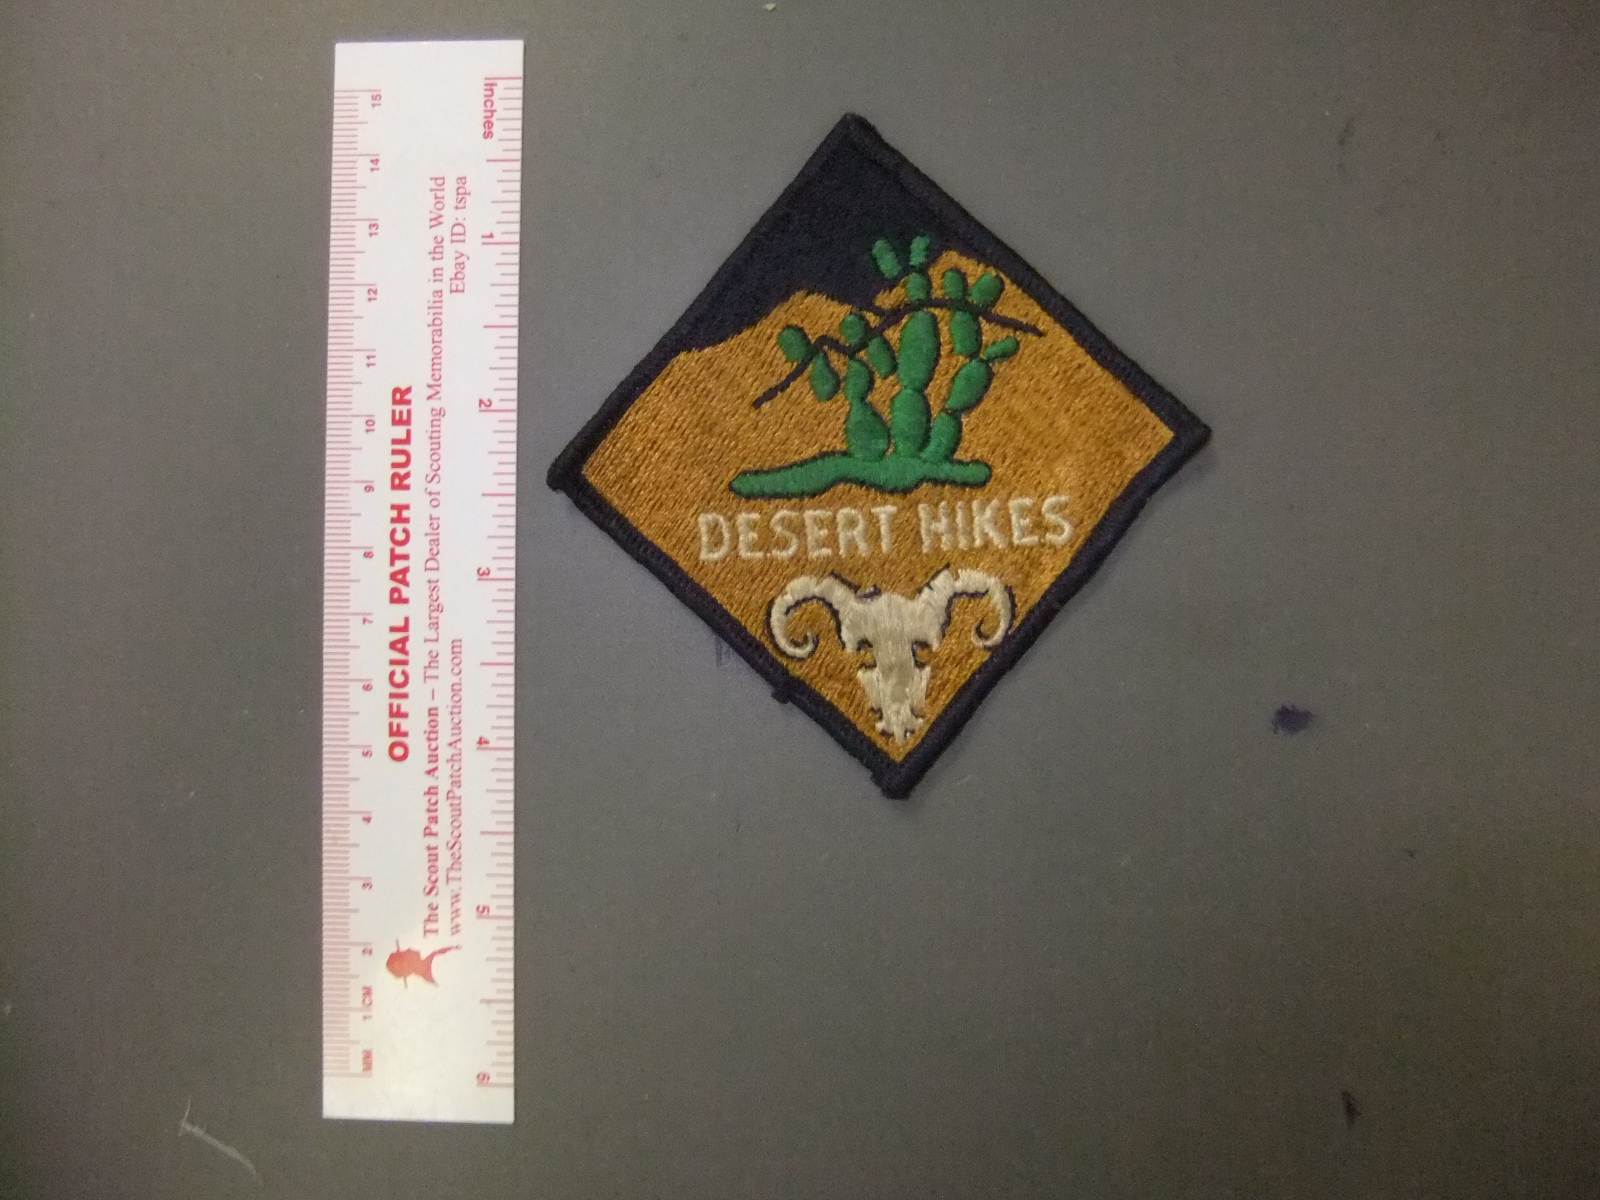 Boy Scout Belle Meade Historic Trail Hike Patch 2299GG